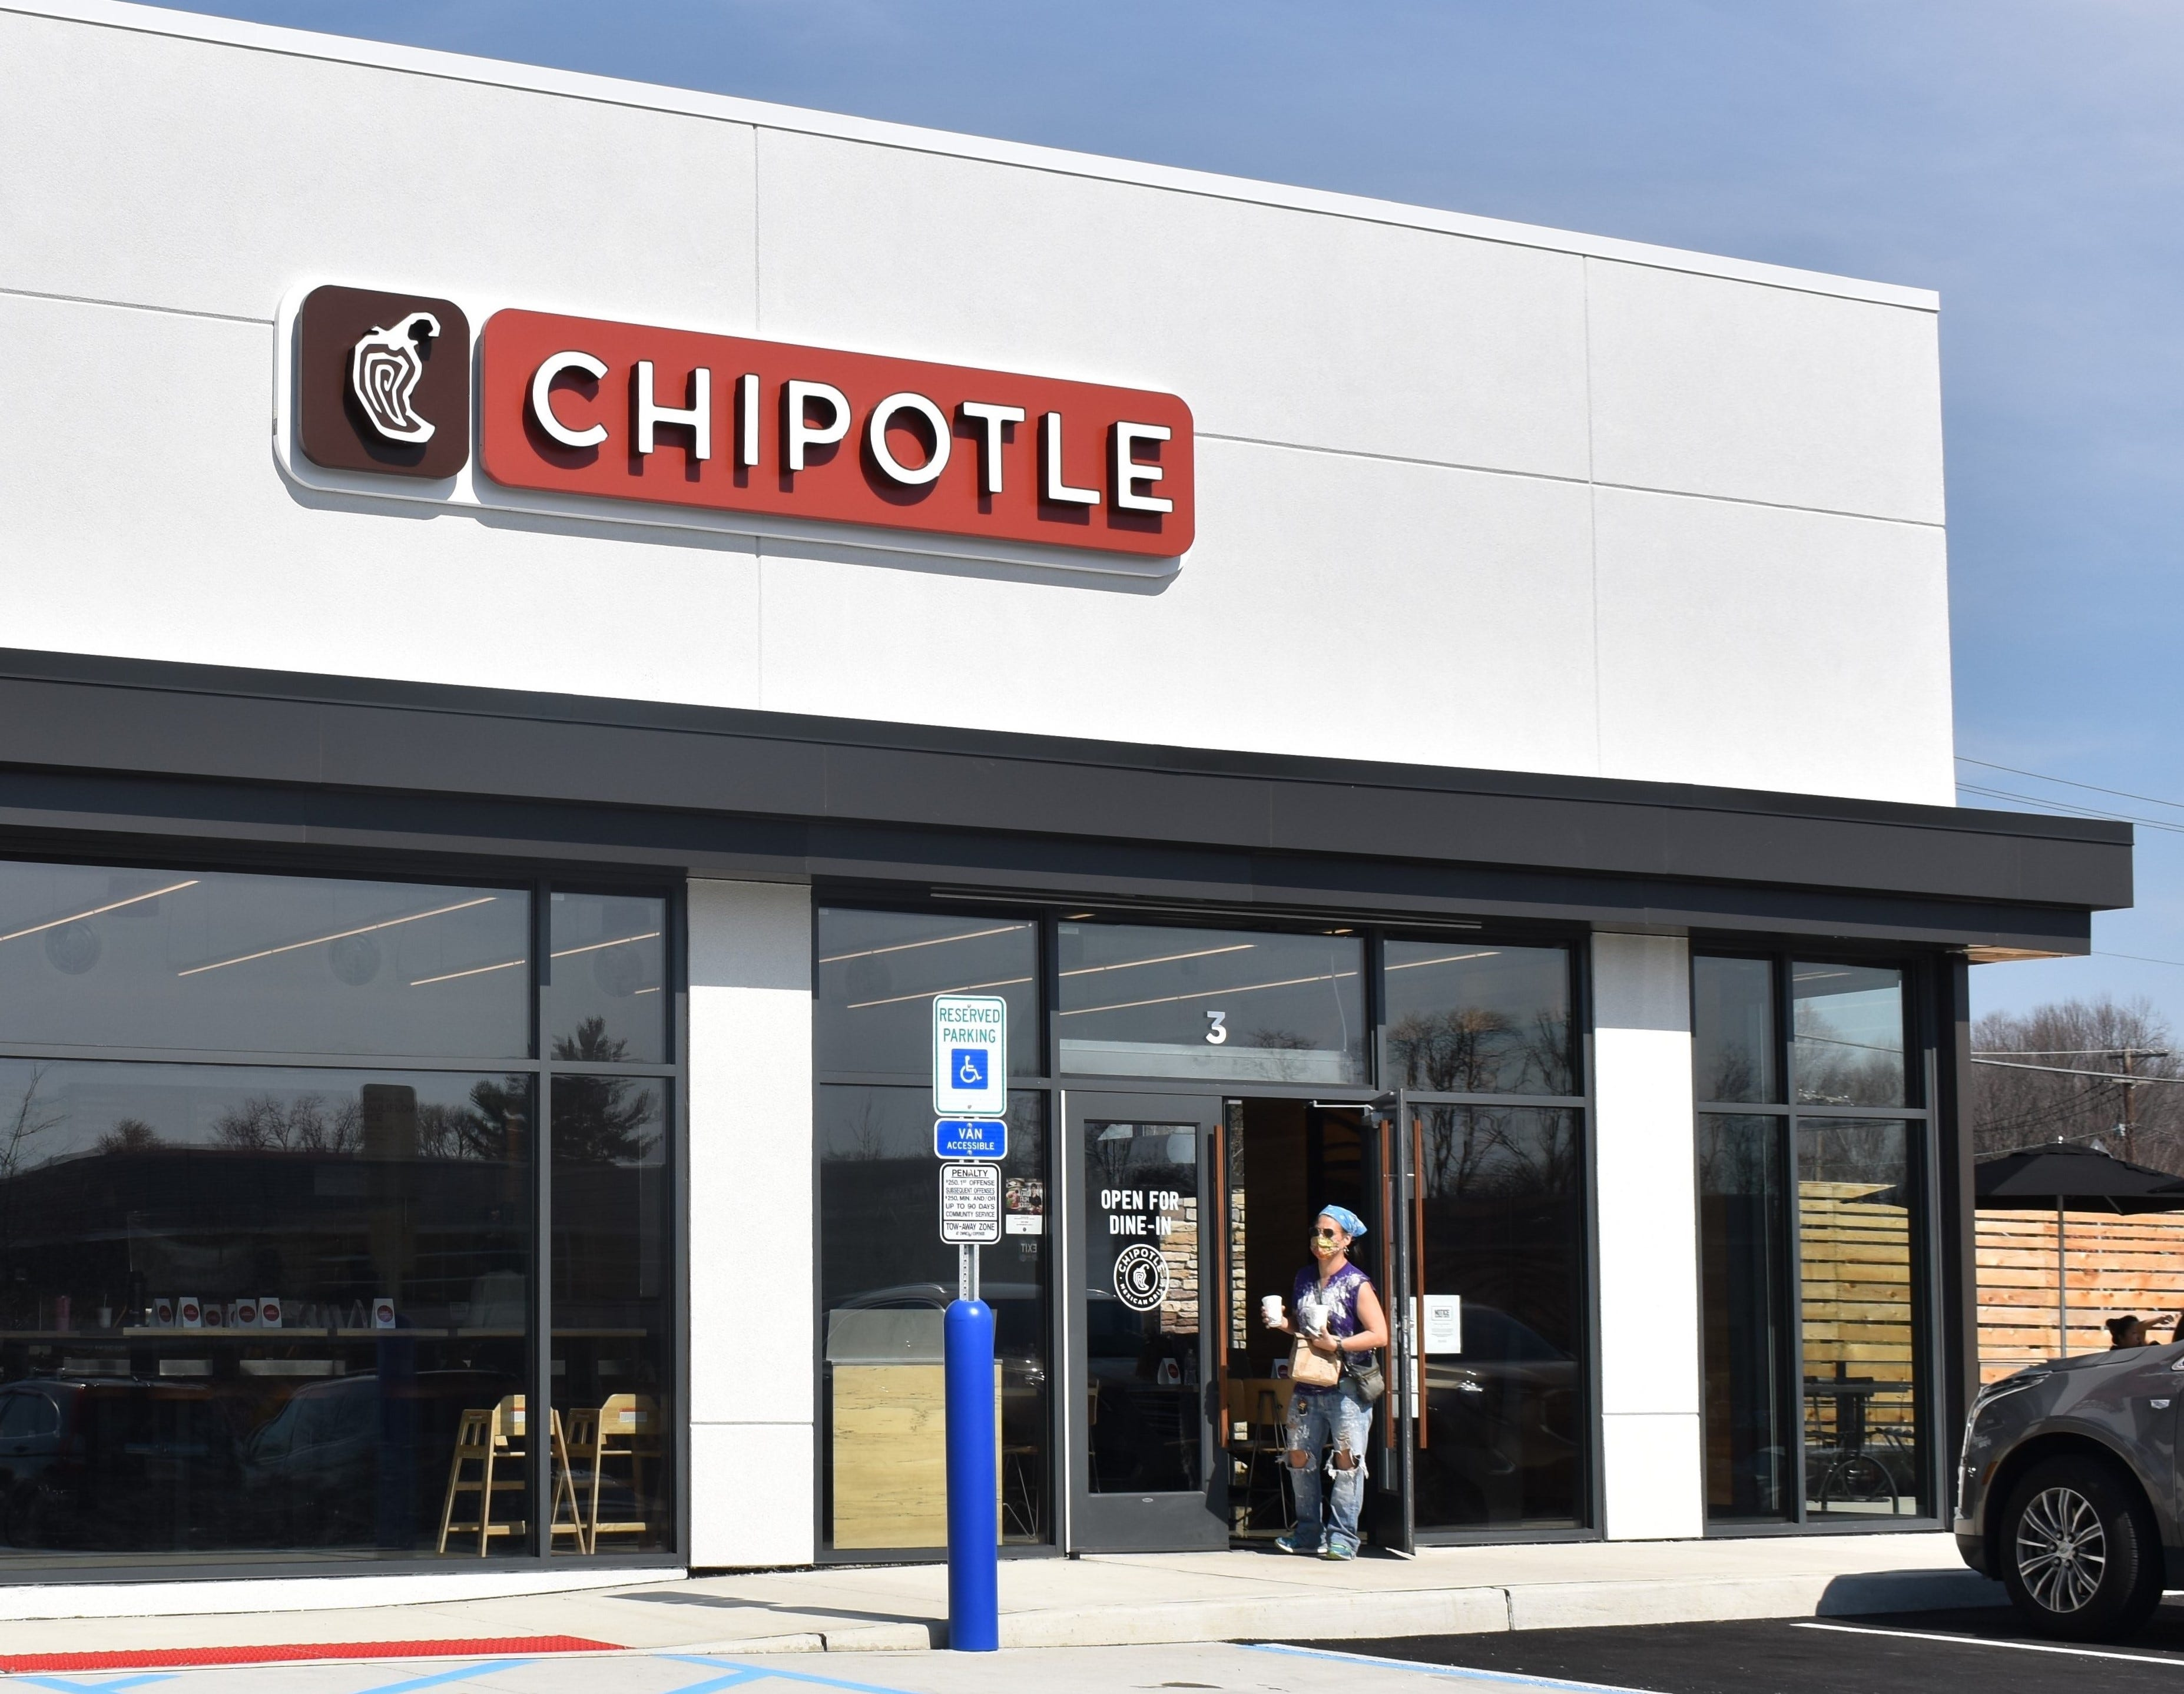 Chipotle has BOGO deal for getting COVID vaccine Tuesday. Plus, where to find Fried Chicken Day deals.